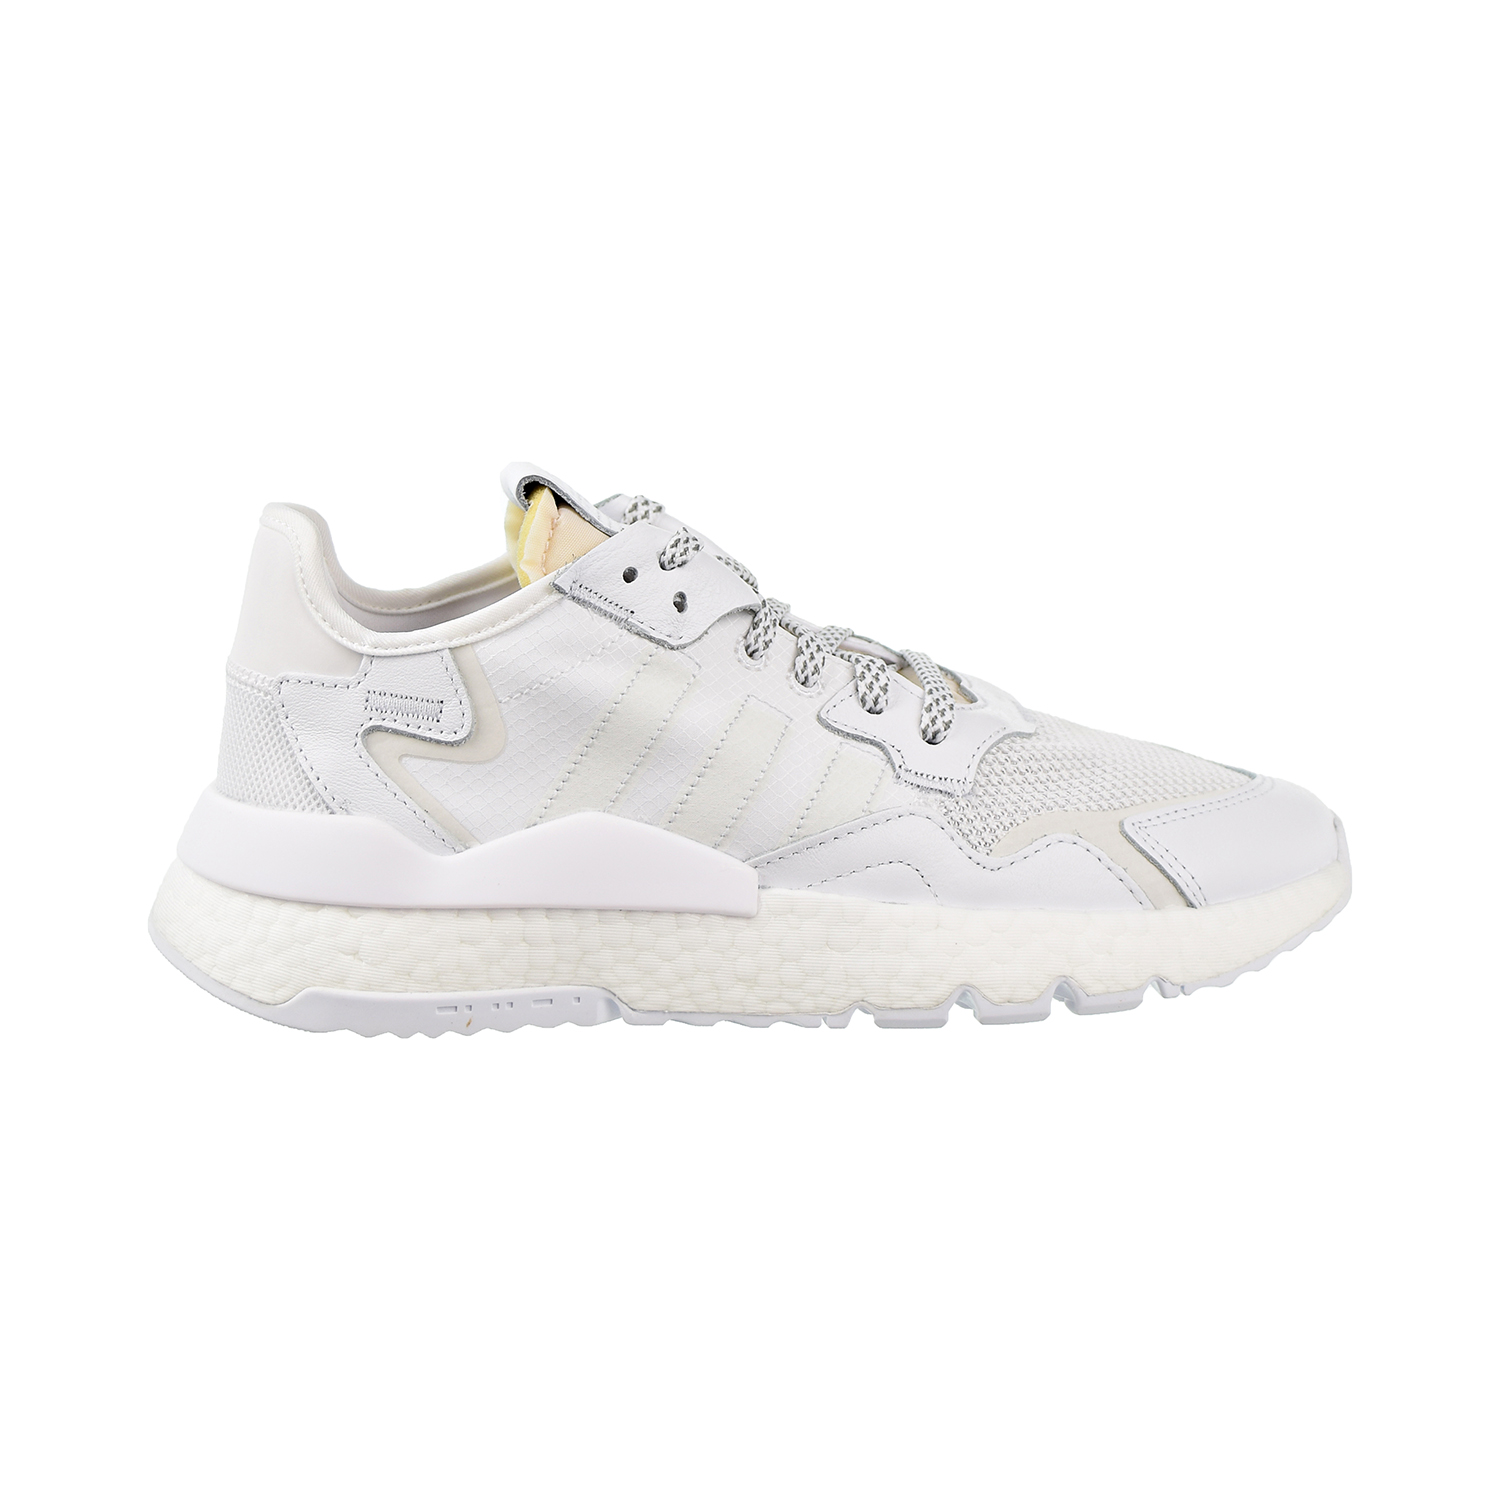 Adidas Nite Jogger Mens Lifestyle Shoes Boost Cloud White